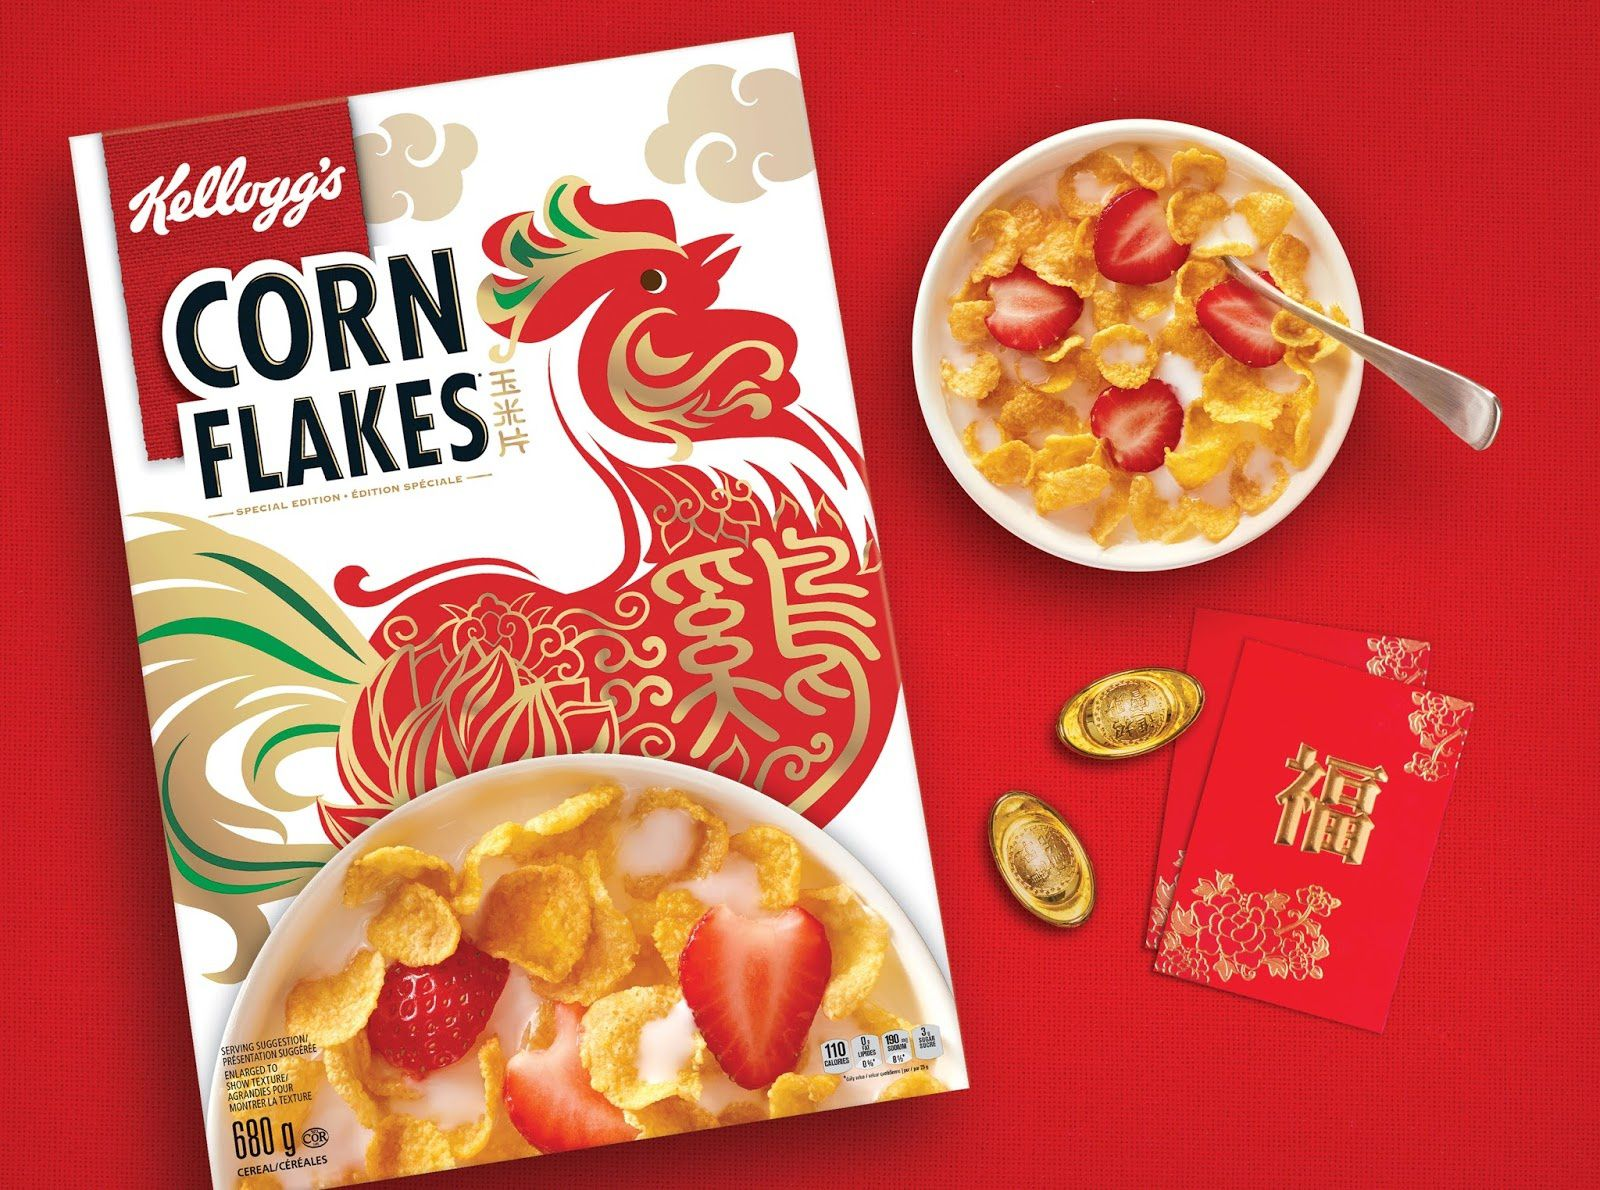 Kellogg's Canada - Chinese New Year Limited Edition (corn-flakes en édition spéciale Nouvel An Chinois) I Design : Anthem Wordwide, Toronto, Canada (juin 2017)